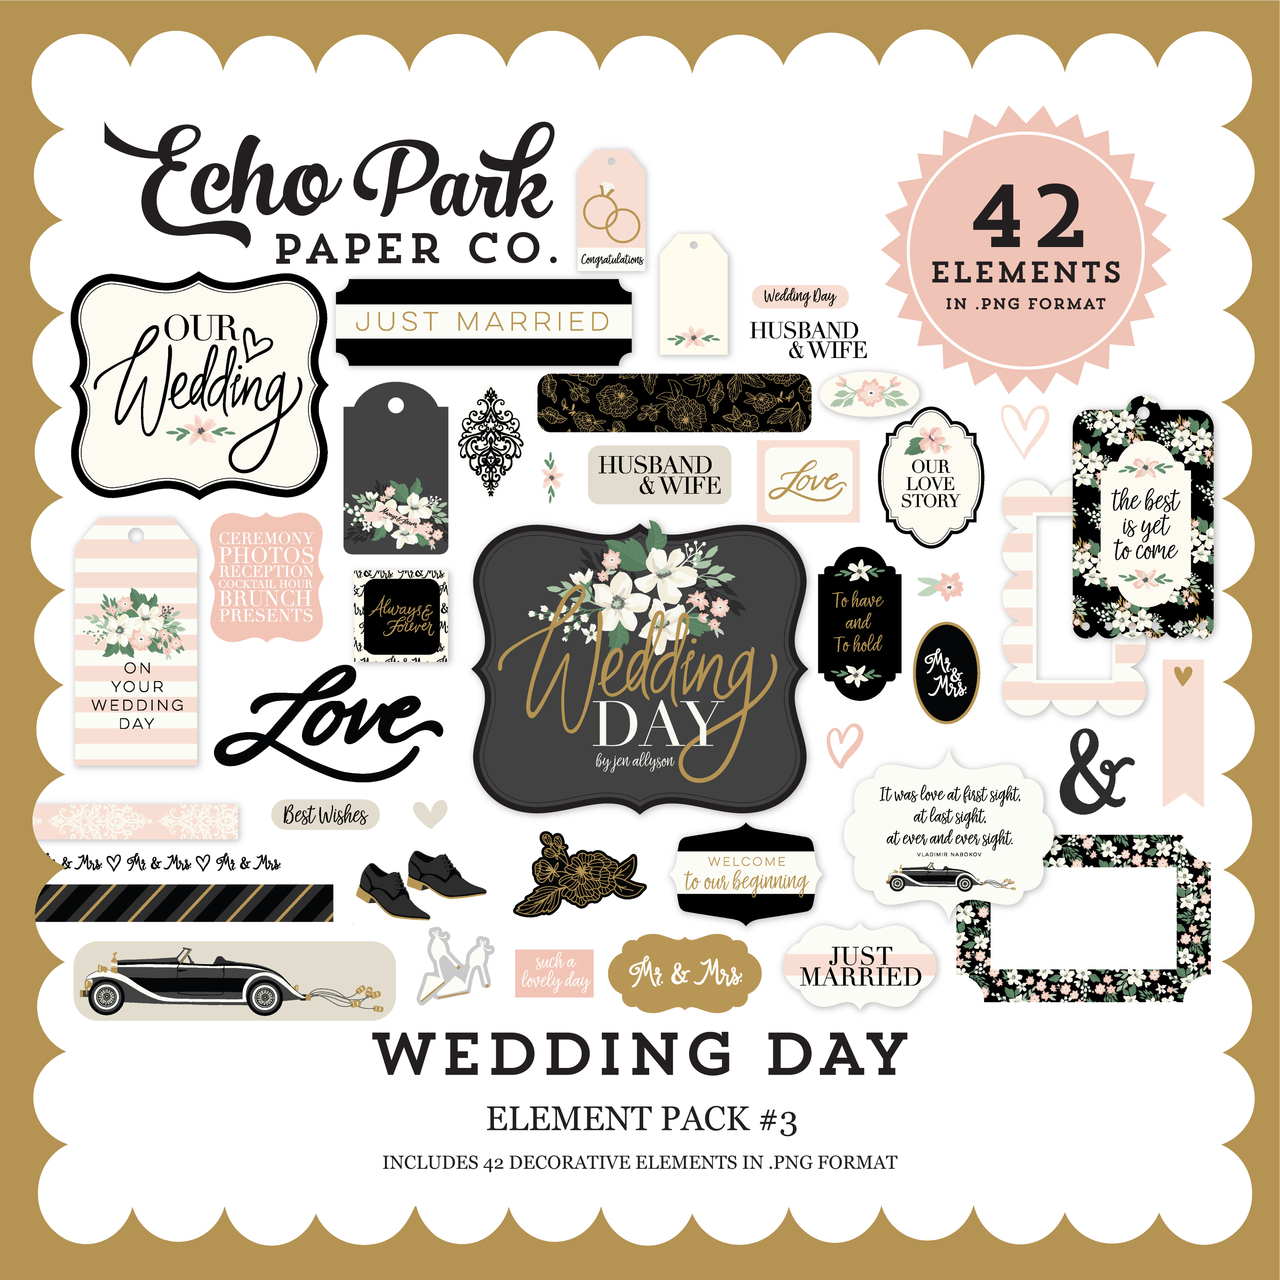 Wedding Day Element Pack #3